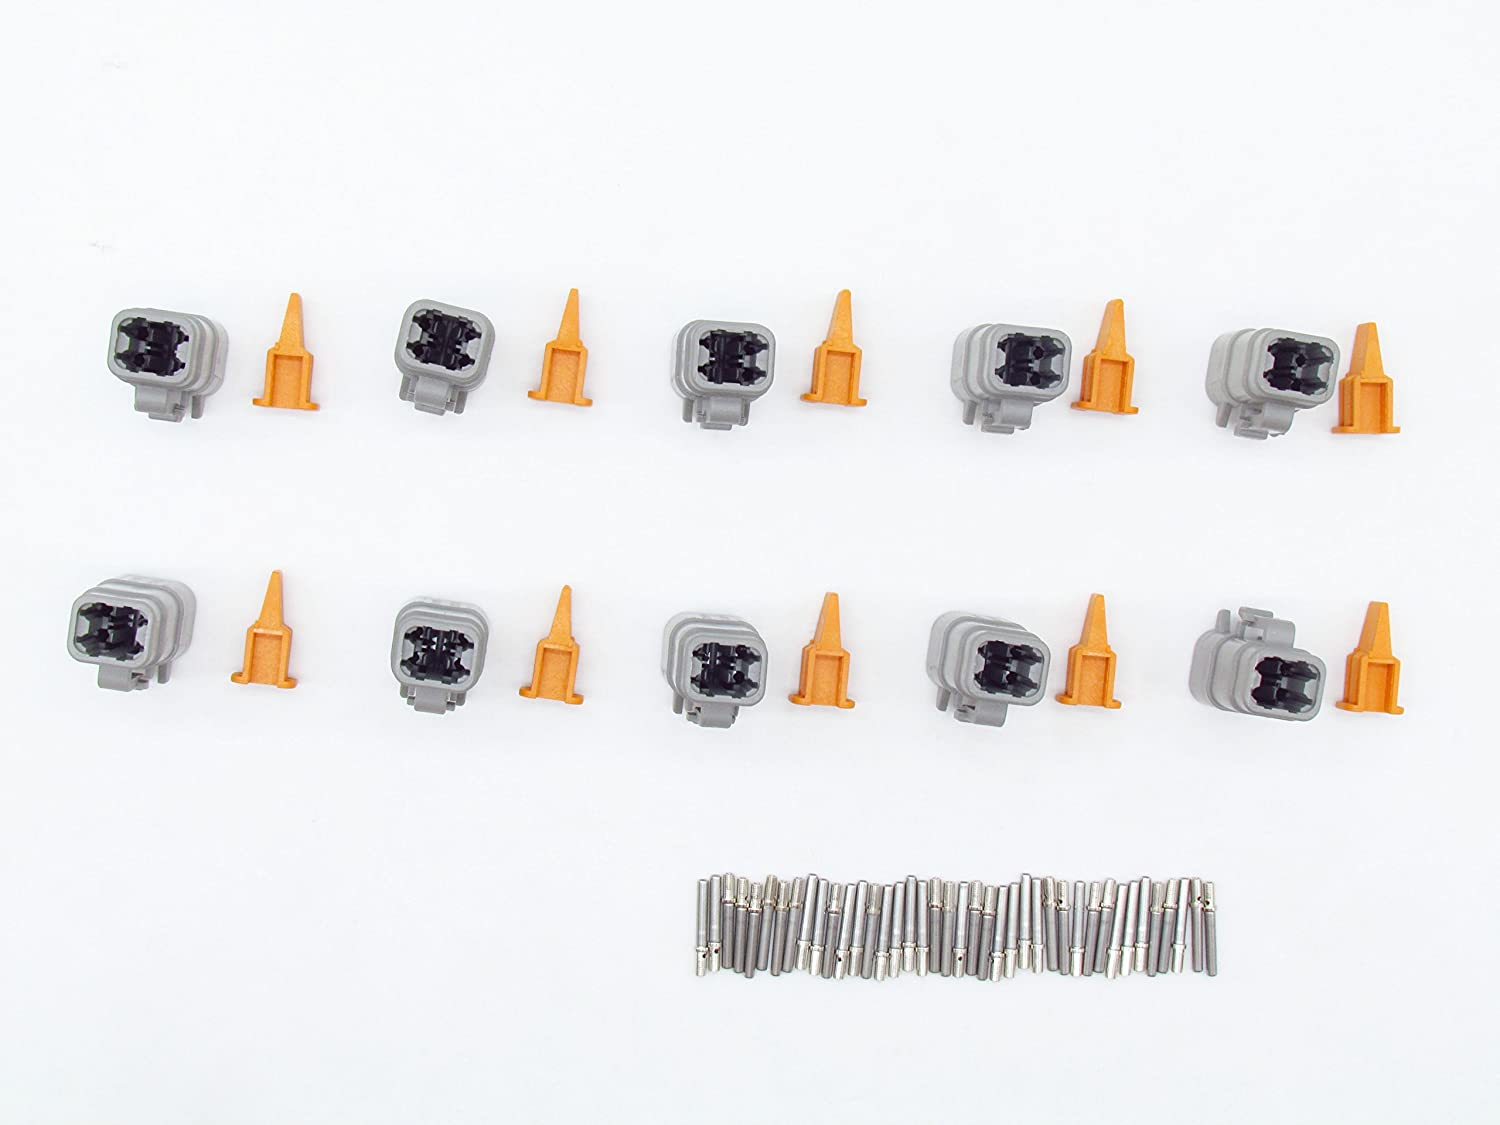 CNKF 10 Sets DTM gray PLUG 4 position way female auto connector DTM06-4S ATM06-4S with terminals pins